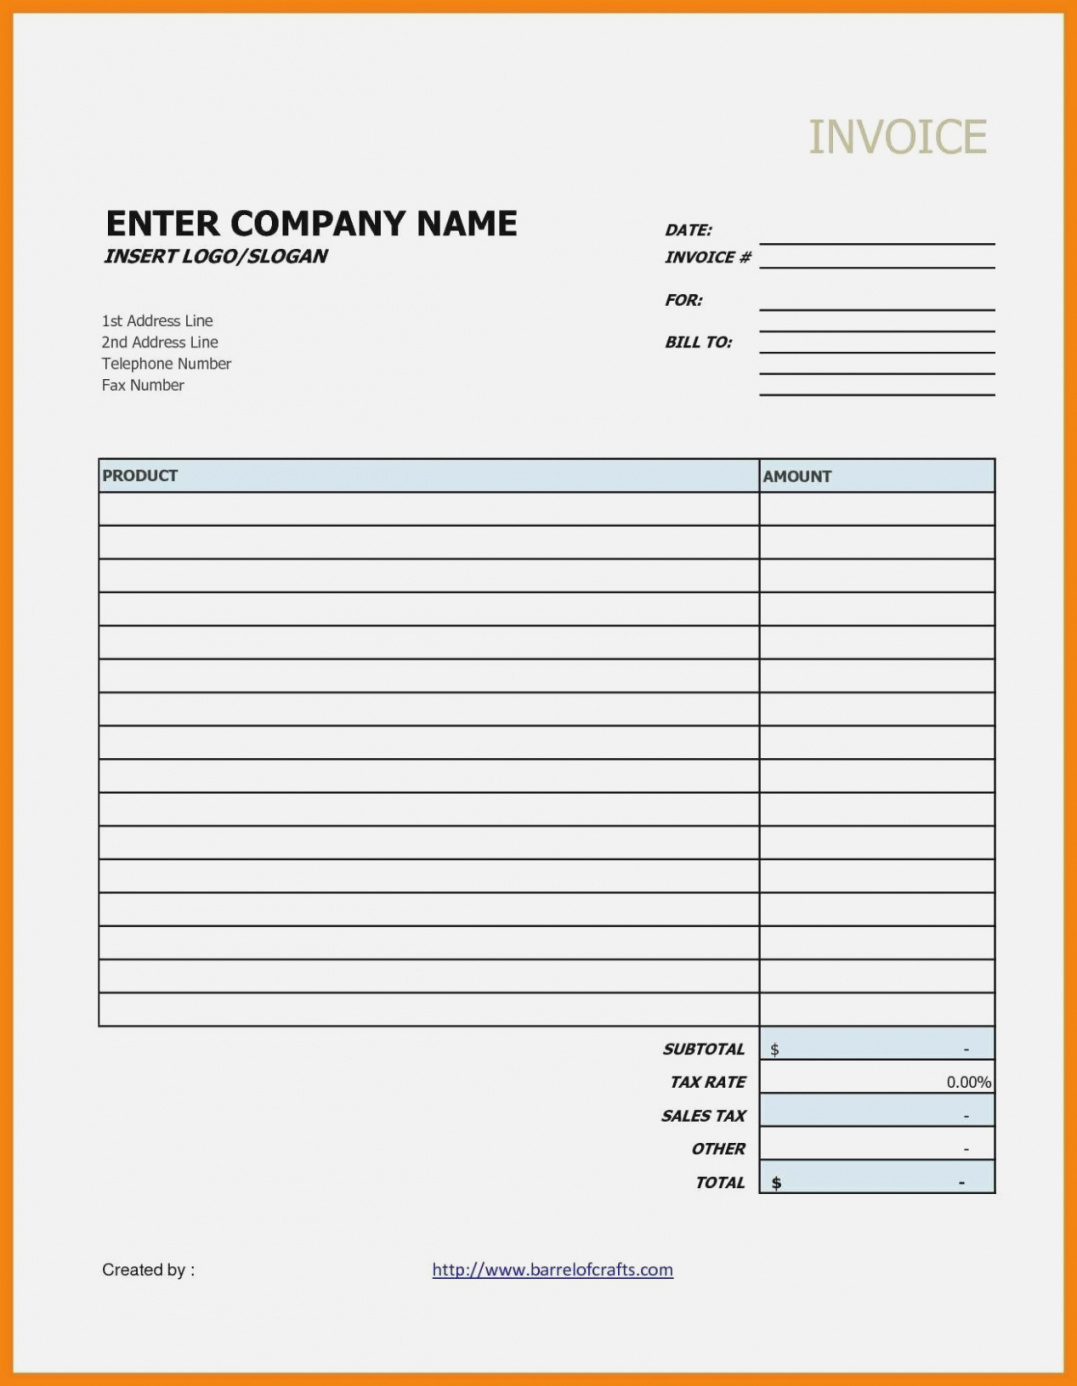 Blank Invoice Template Google Docs | Spreadsheet Collections Contractor Invoice Template Google Docs